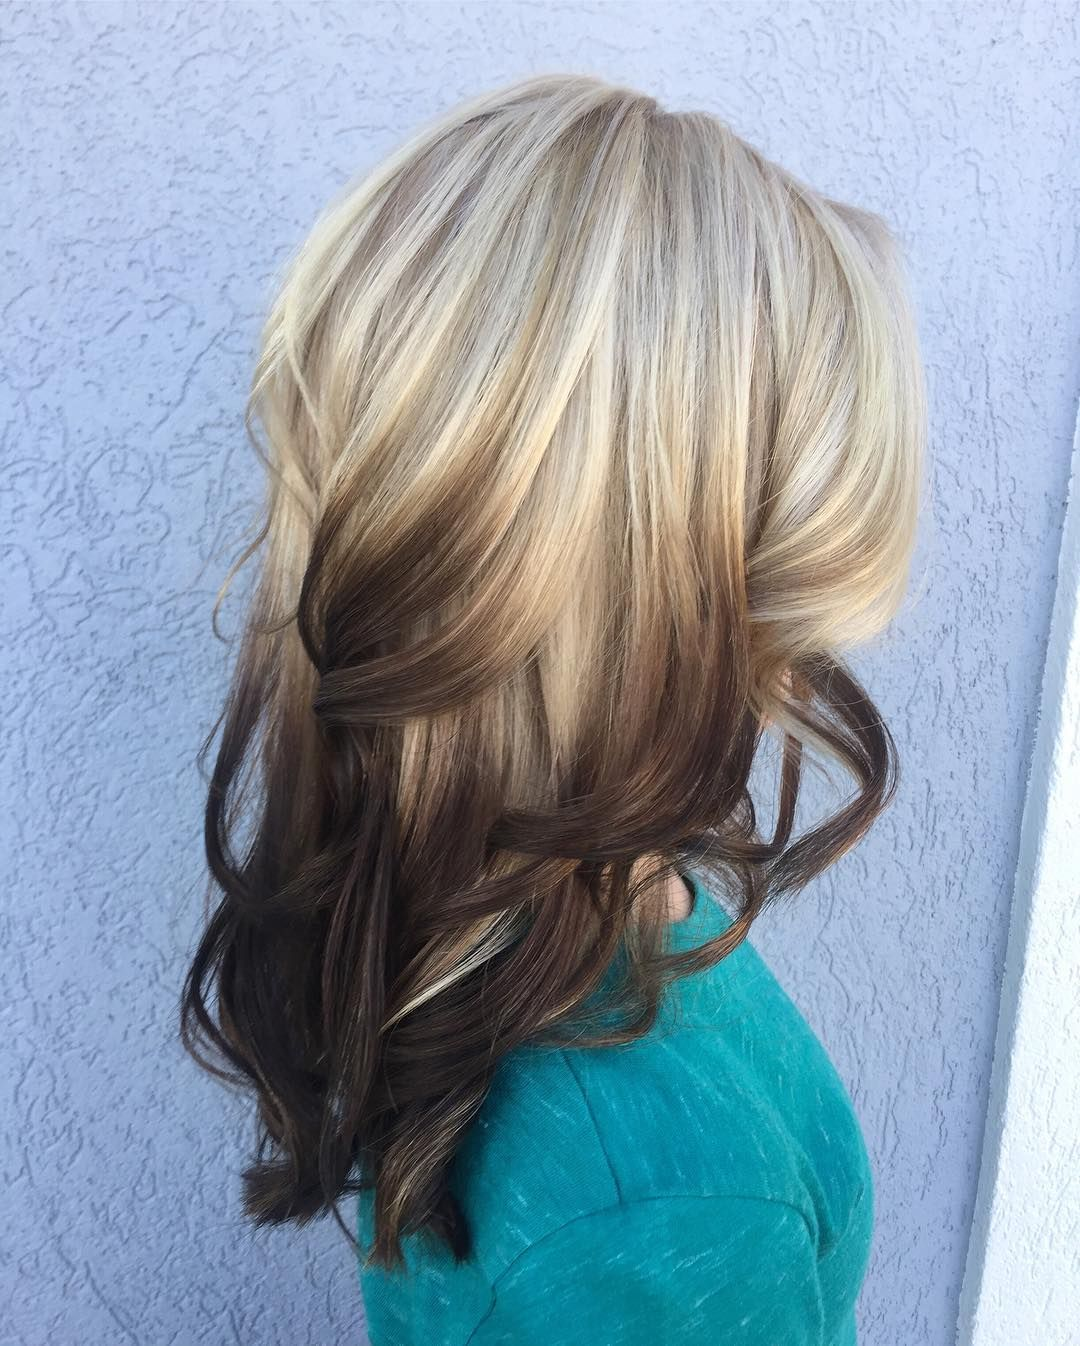 20 Trending Ombre Hair Color Ideas To Try With Pictures Ombre Hair Color For Brunettes Hair Styles Ambre Hair